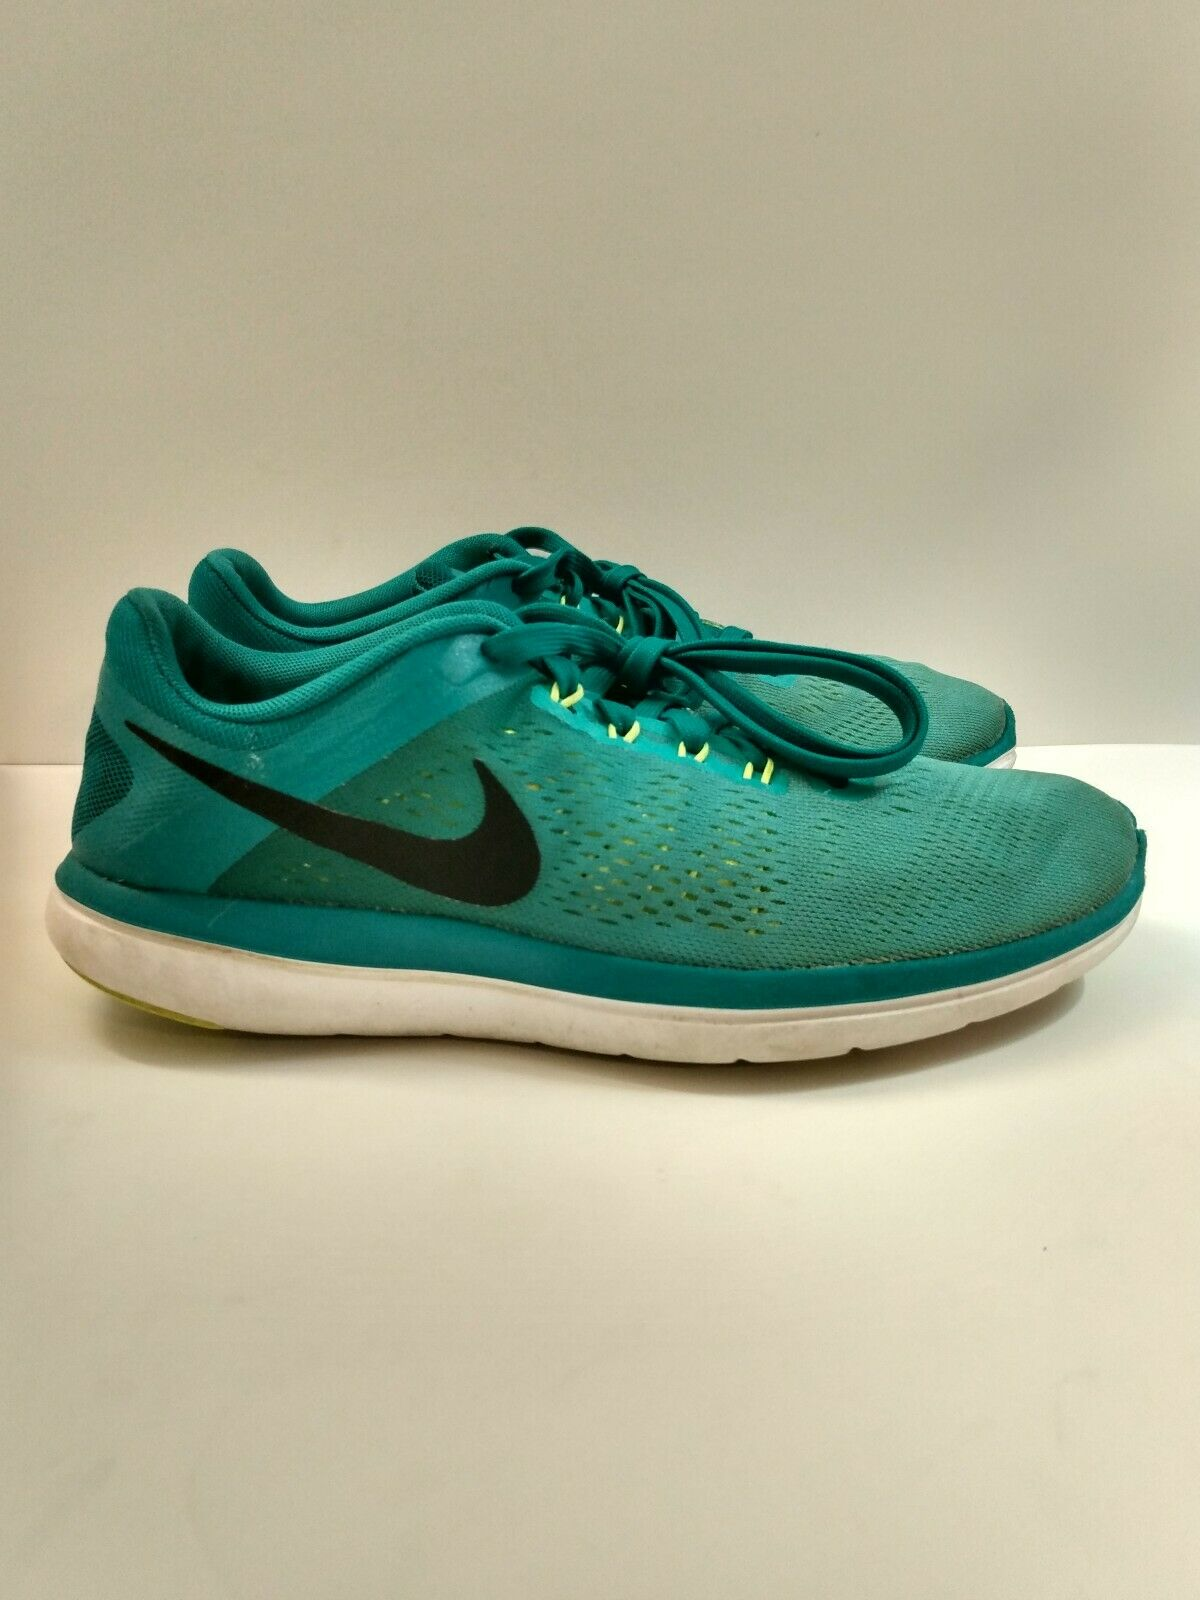 Profesor dieta frutas  Nike Womens Flex 2016 RN Shield Run Running Shoes 852447-300 Sz 8 Green  Glow for sale online | eBay